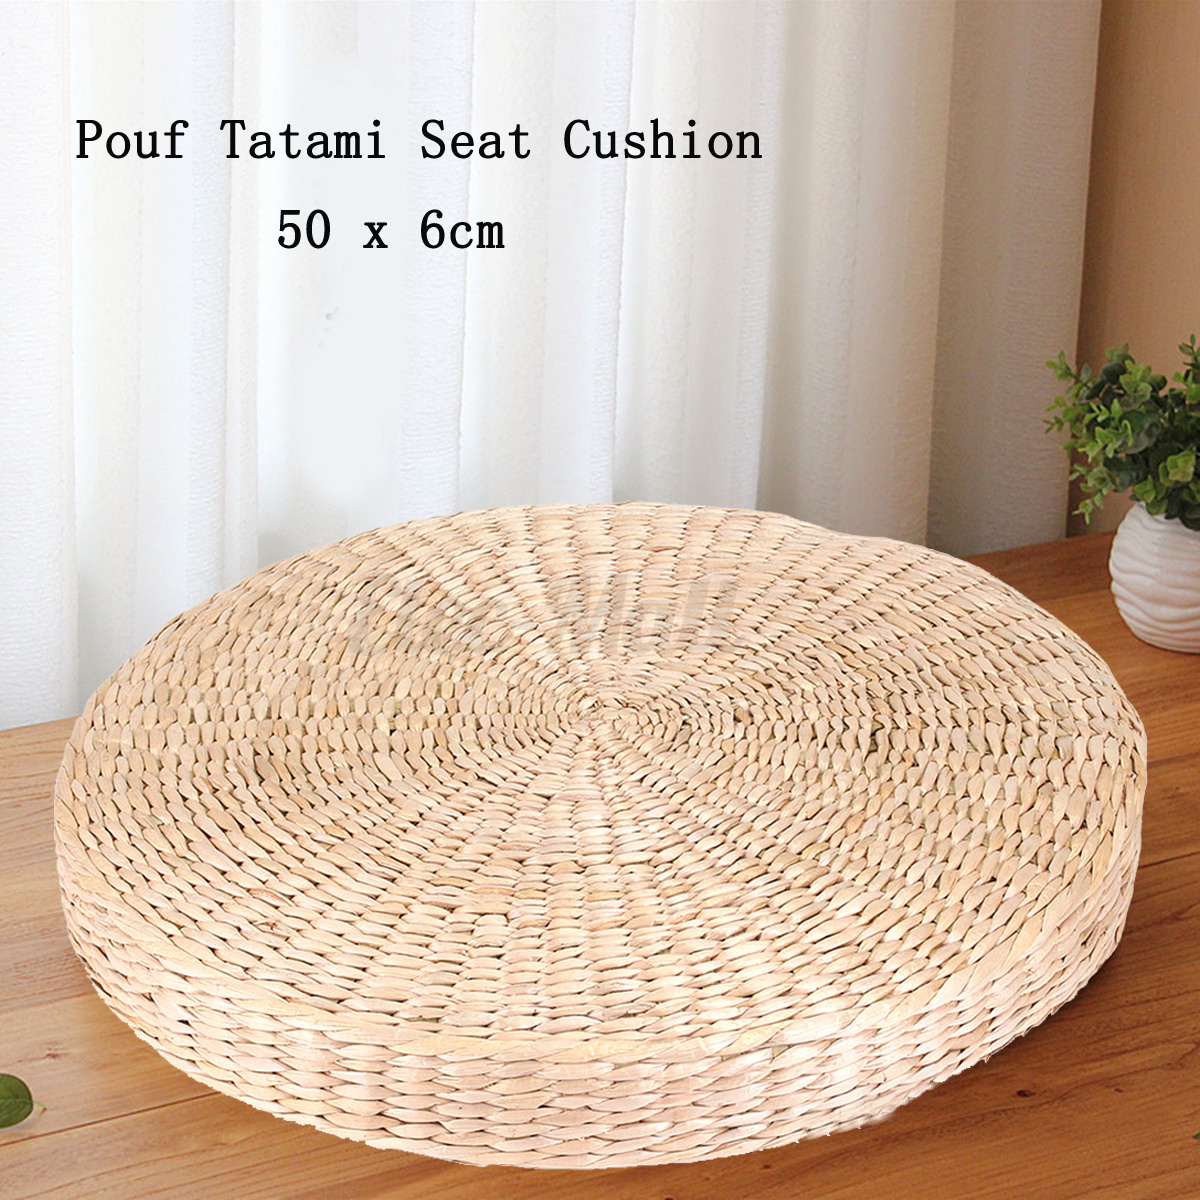 Round Straw Floor Pillows : 50cm Round Pouf Tatami Cushion Floor Cushions Natural Straw Meditation Yoga Mat eBay